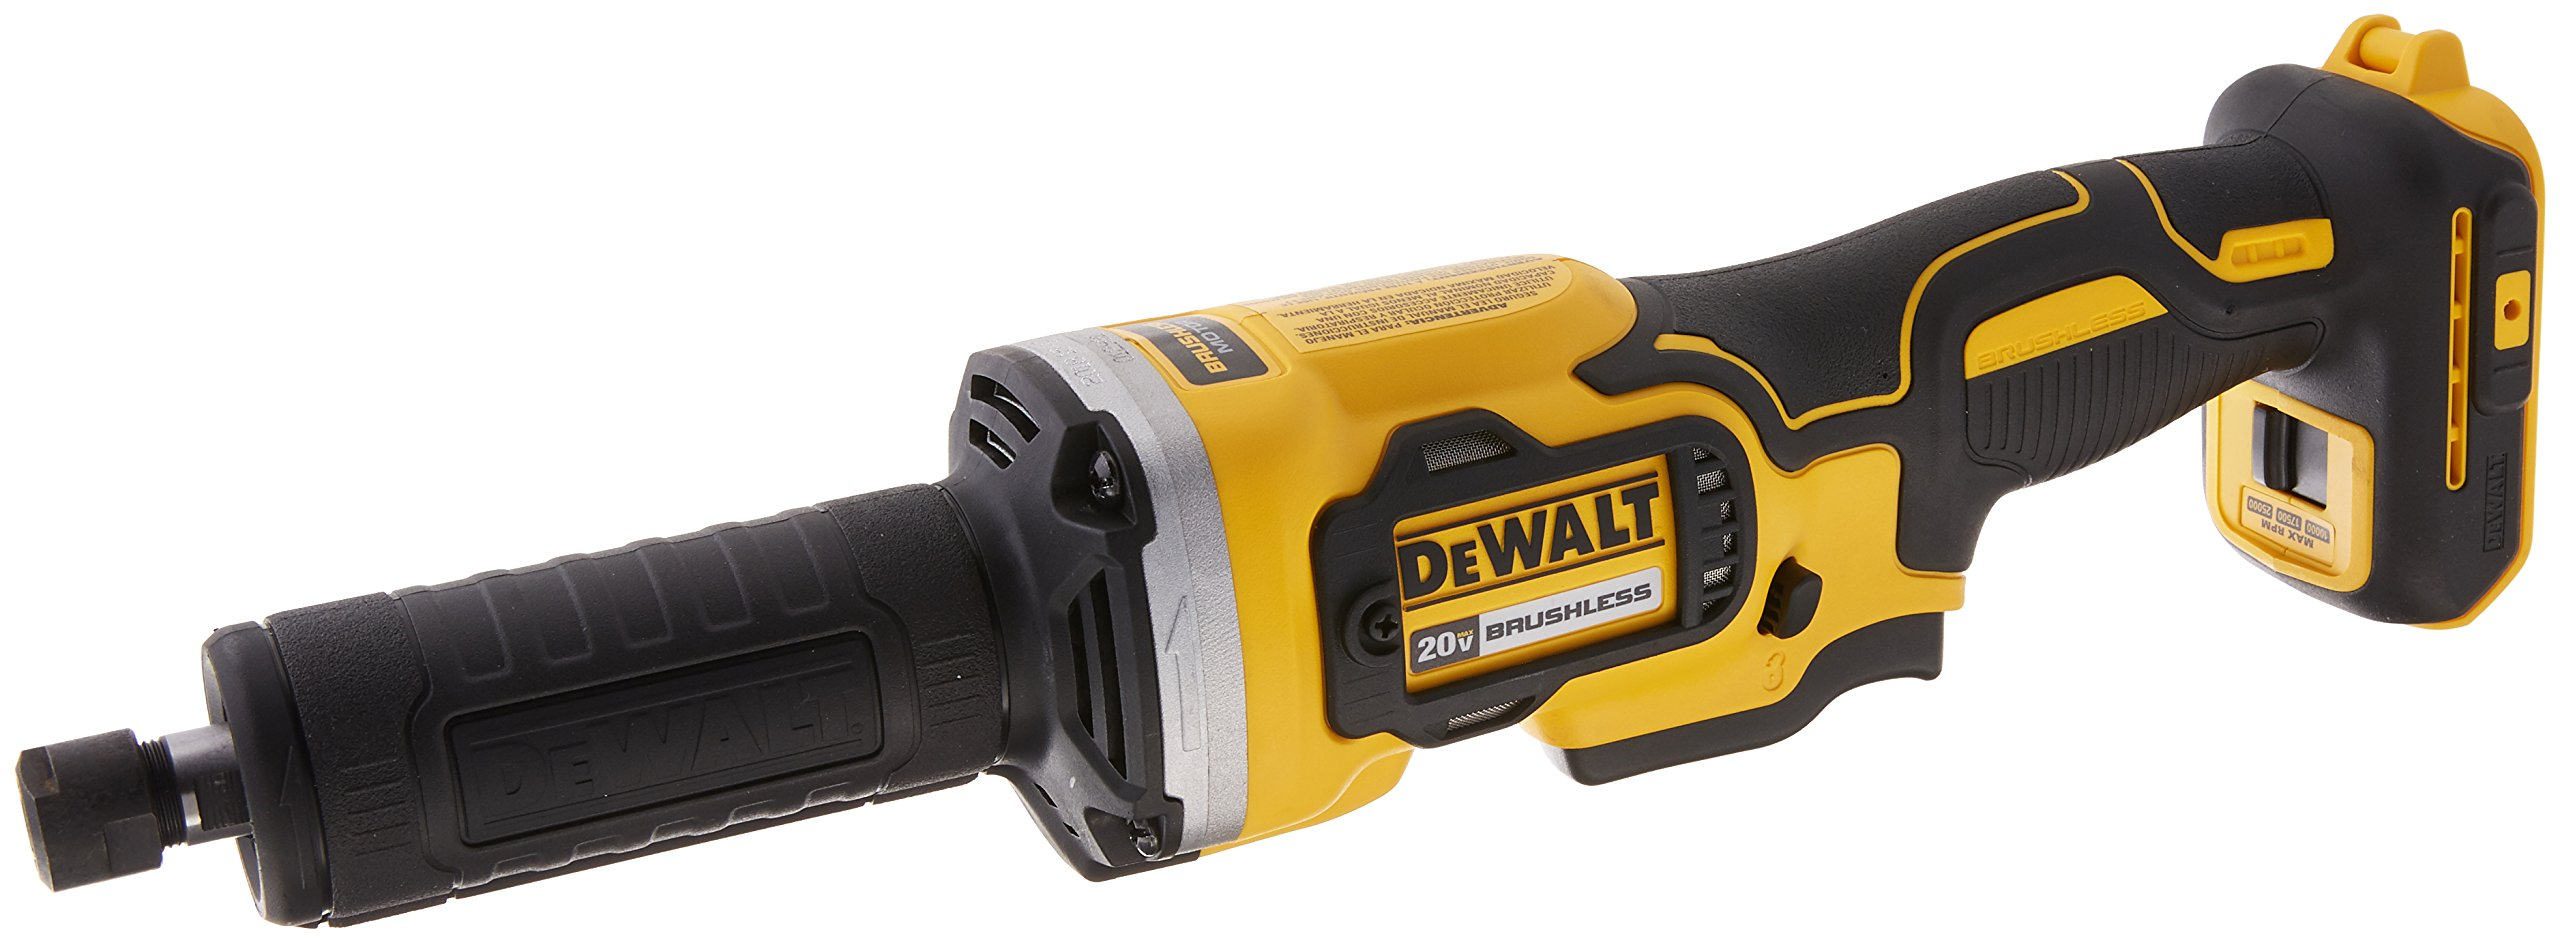 DEWALT DCG426B 20V Max Variable Speed Die Grinder, Tool Only